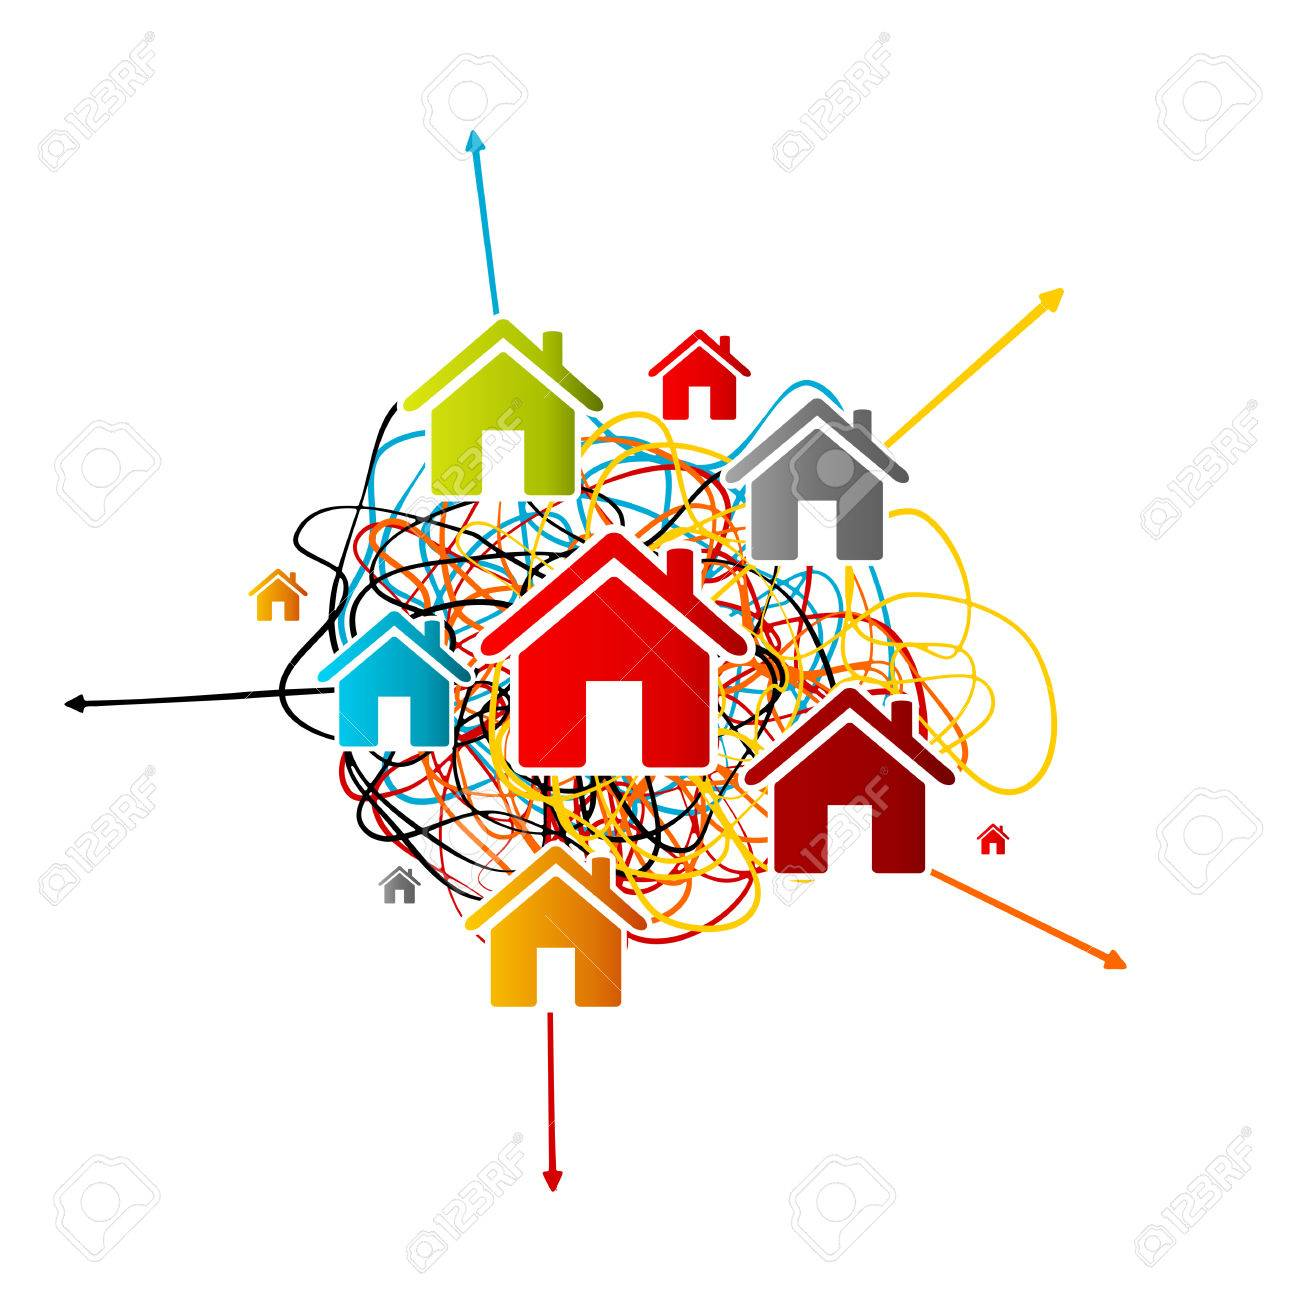 Real estate analysis, house market prediction concept with colorful